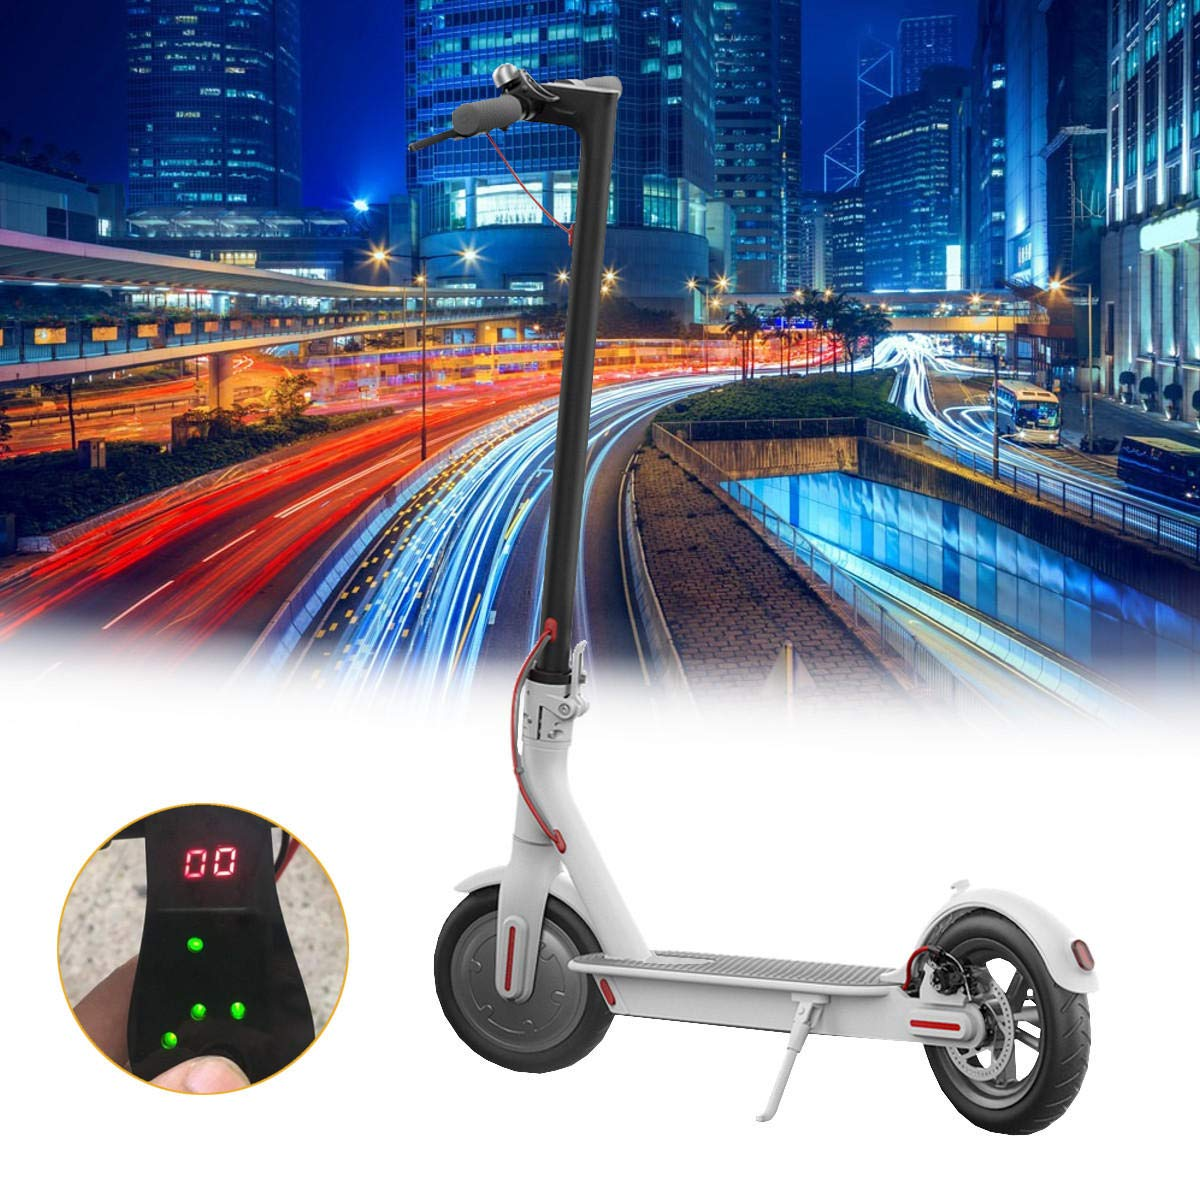 Freelance Shop Sport ALFAS Display 4.4AH/7.8AH Battery Foldable Electric Scooter(No-app Verison) - B White